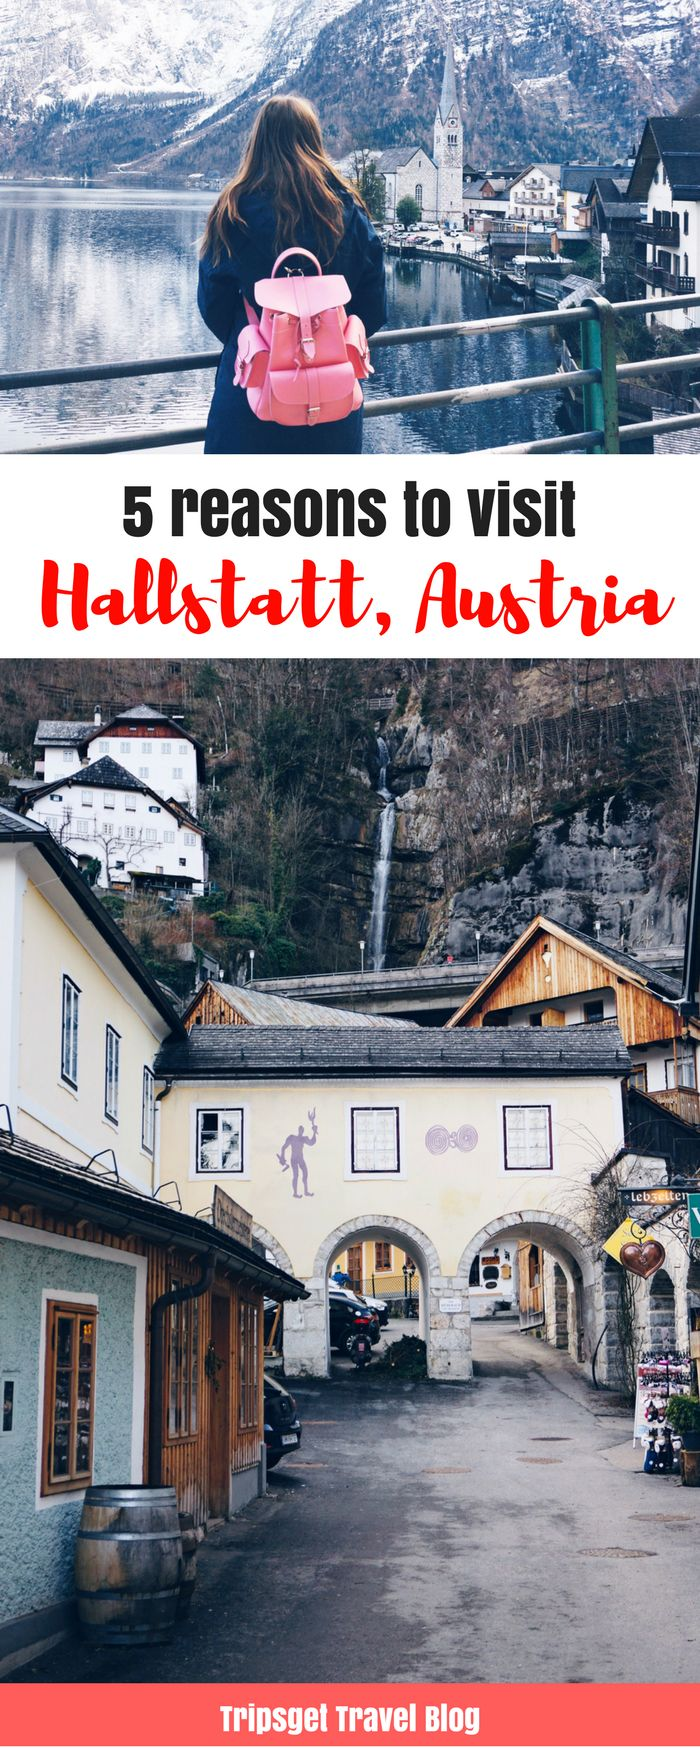 5 reasons to visit Hallstatt - the most beautiful village in Austria - Hallstatt in March. Hallstatt in Spring.